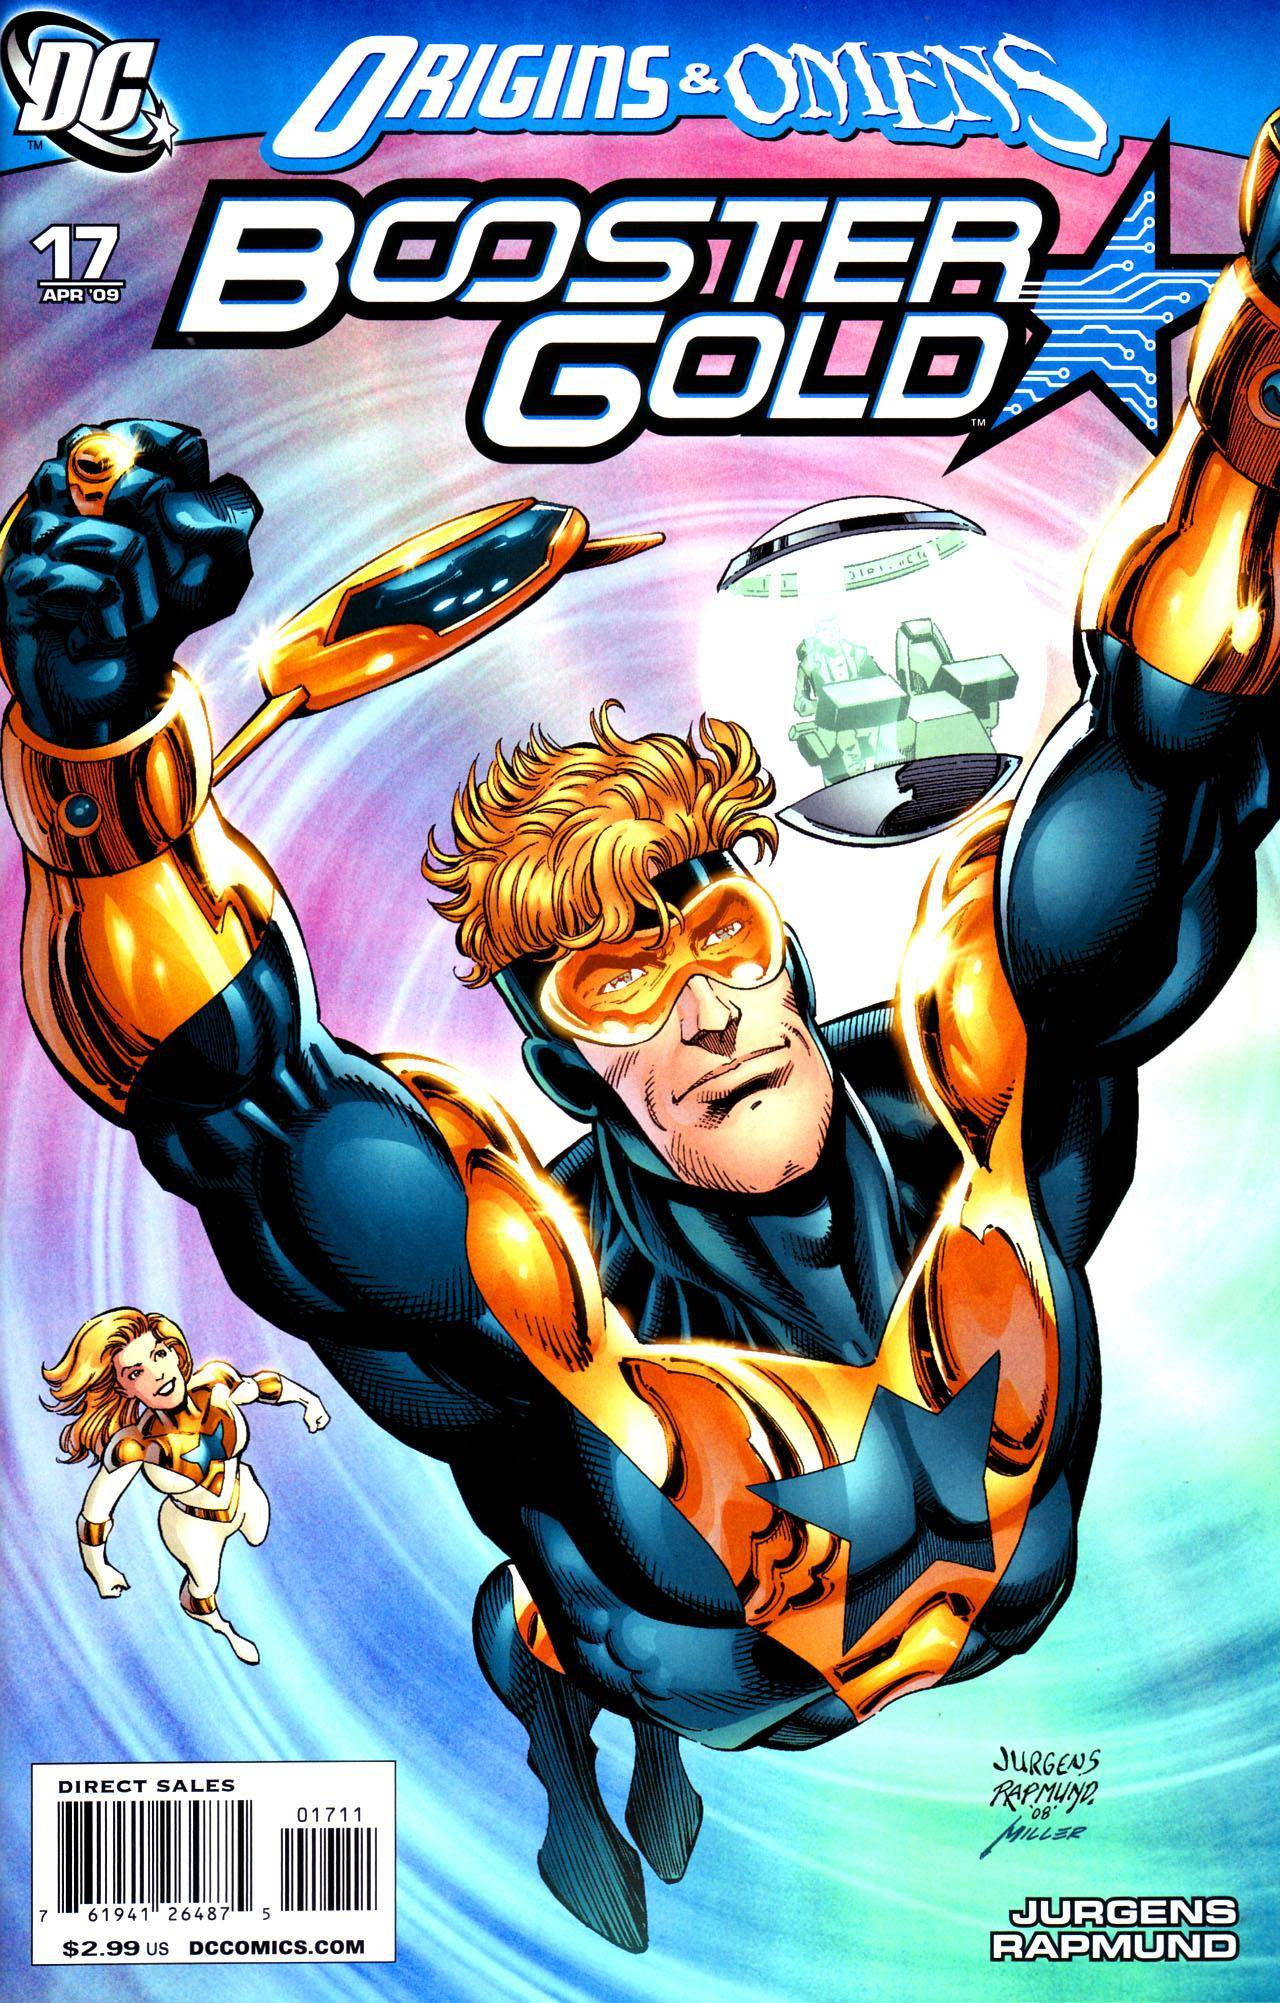 Booster Gold 017 (2009)